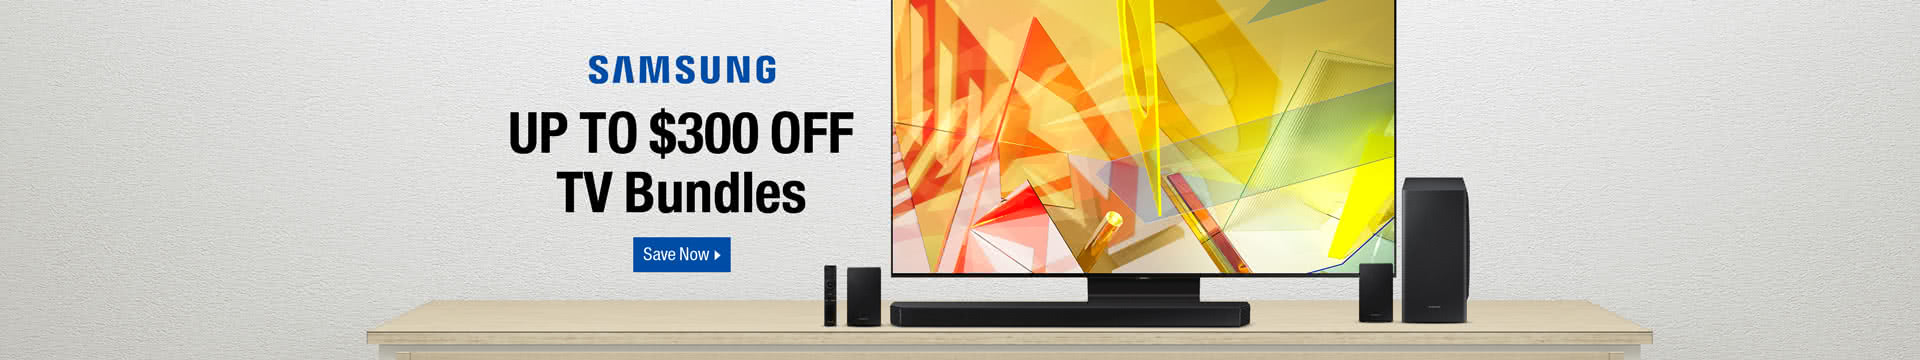 Up to $300 off TV Bundles